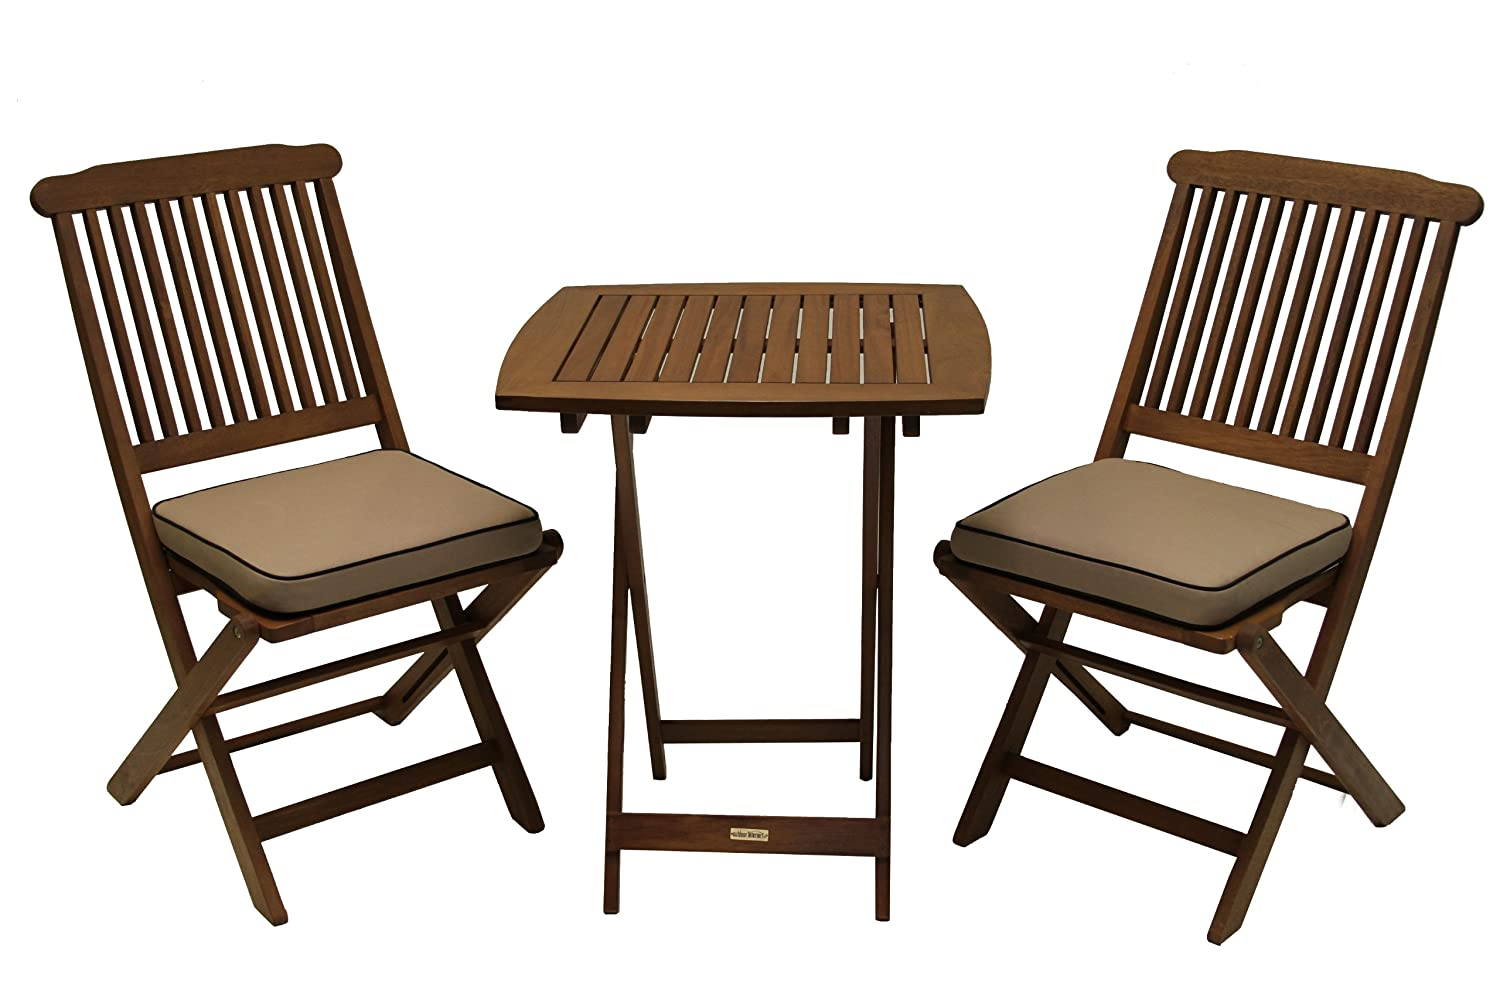 Wood Patio Furniture Sets At The Galleria